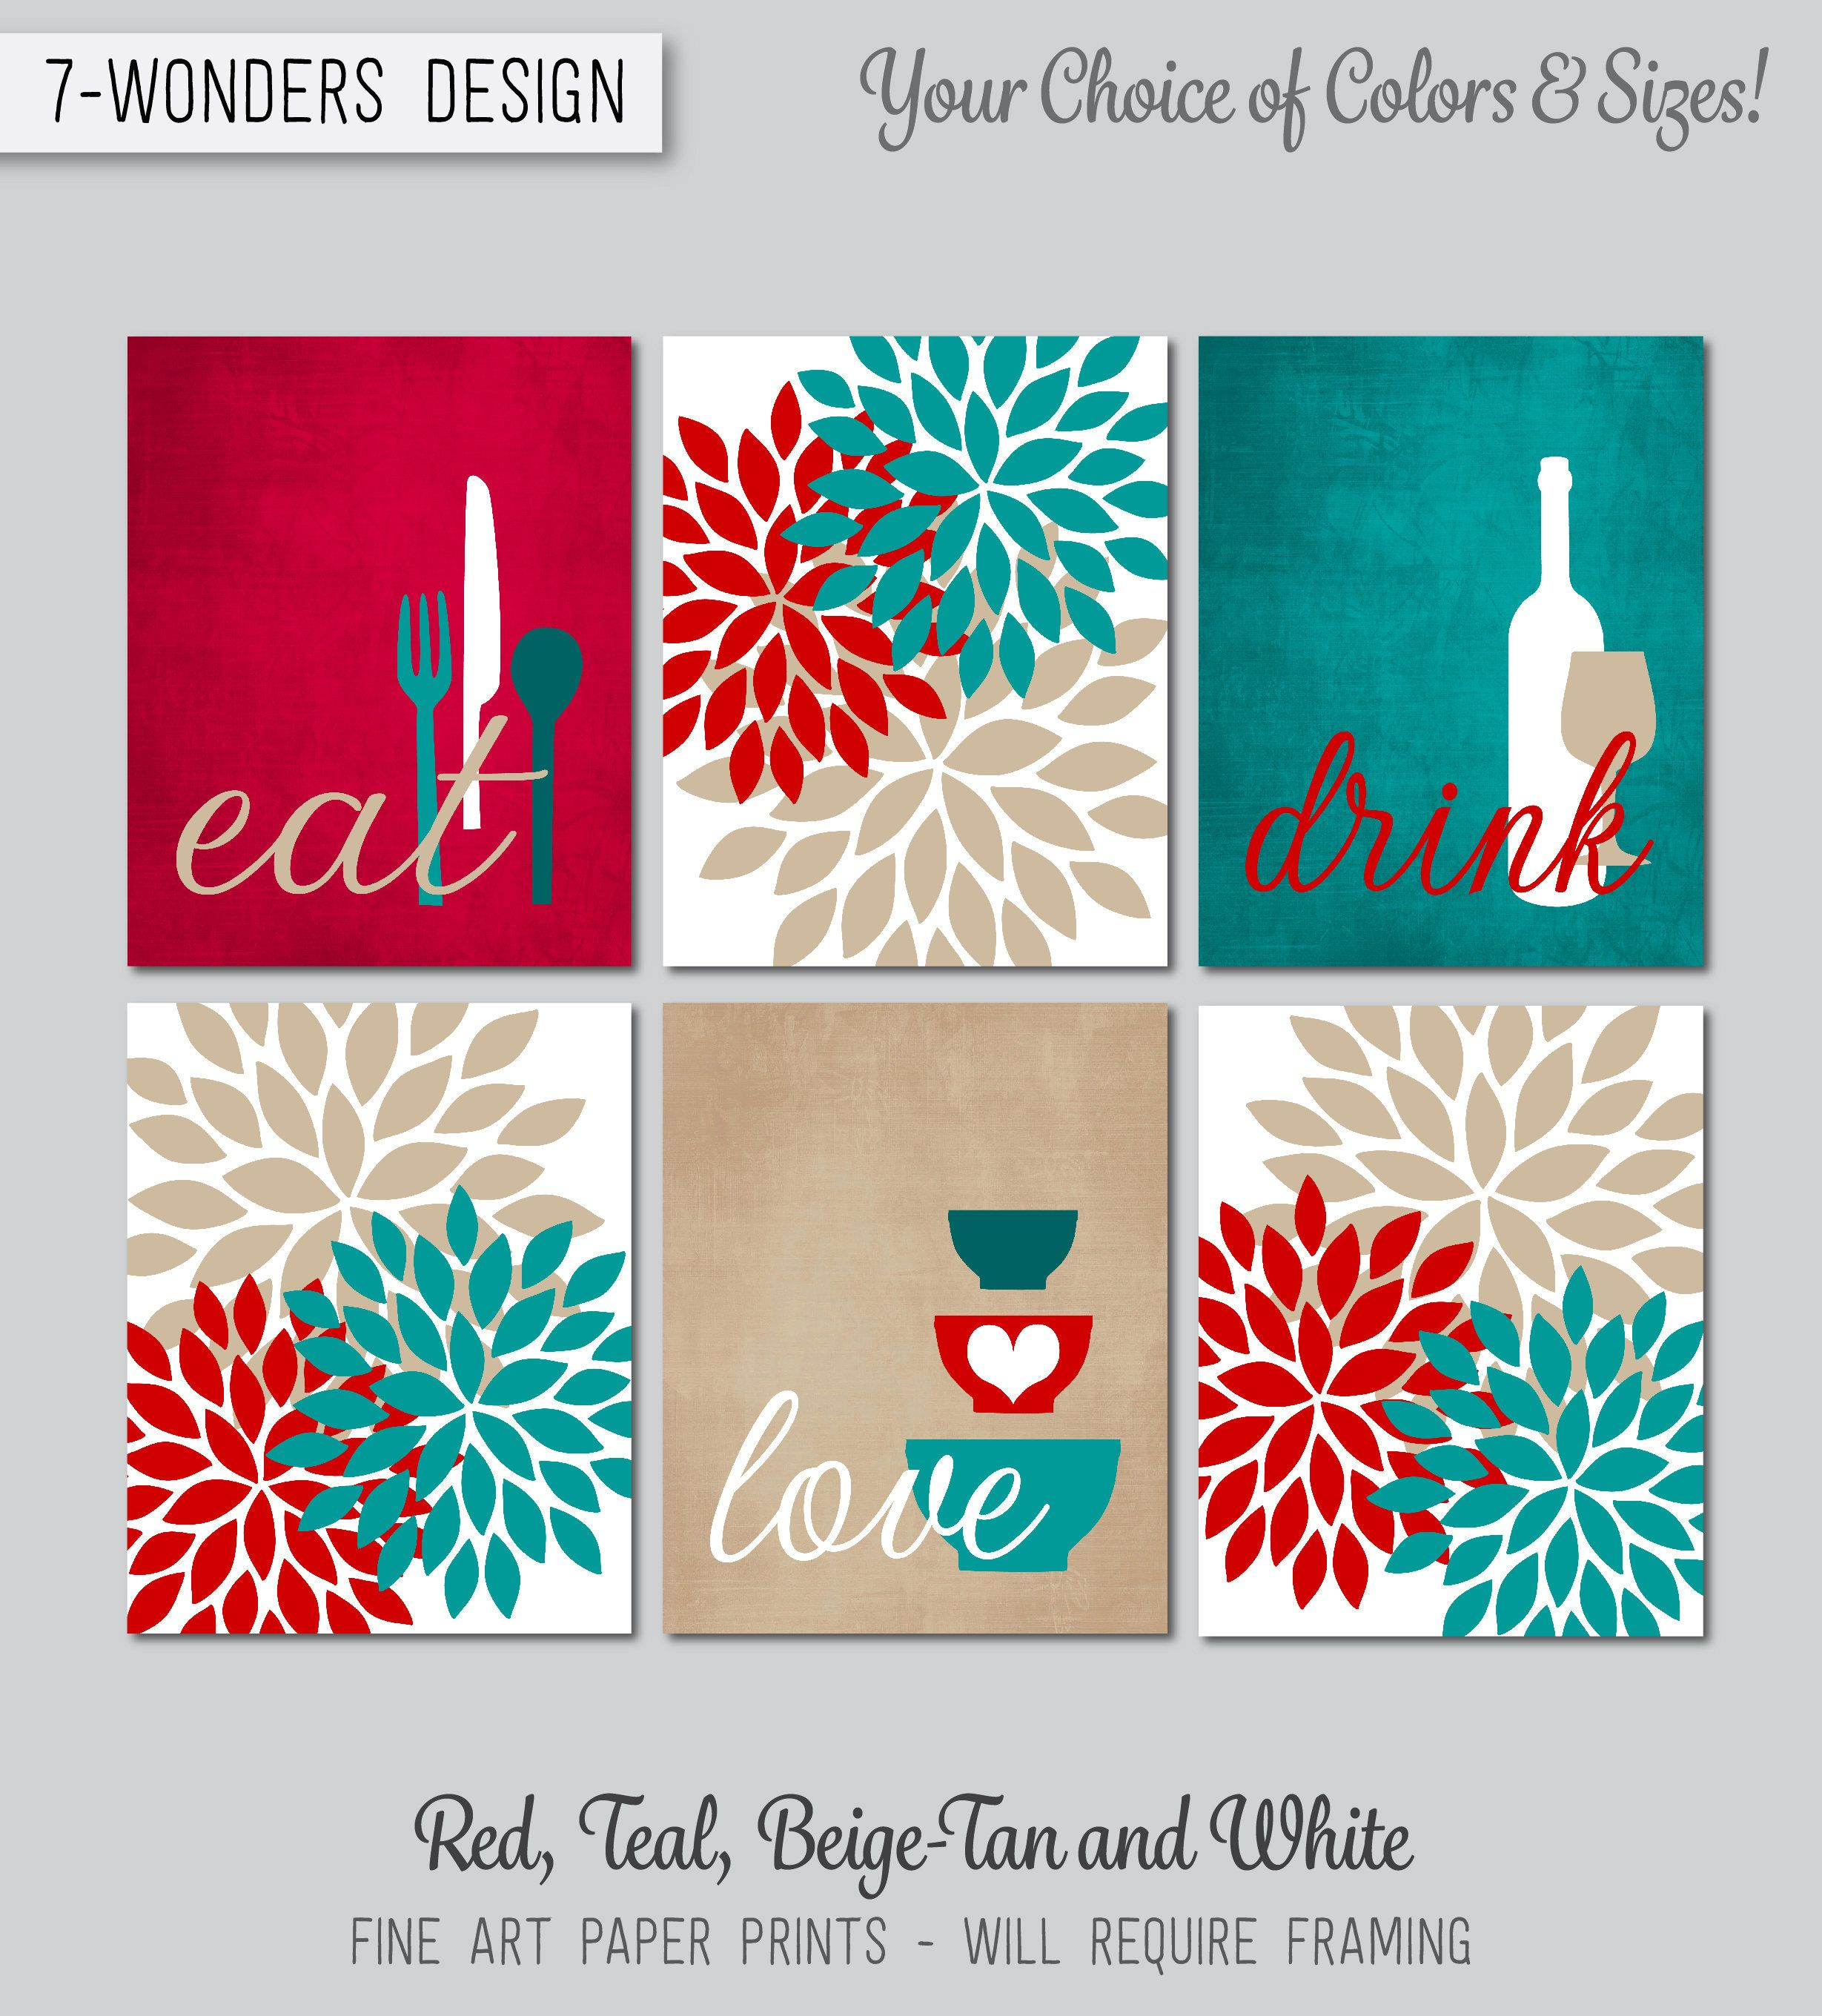 Red Teal Tan Kitchen Wall Art Prints Eat Drink Love Flower Bursts Utensils Wine Bowls Kicthen Home Kitchen Wall Art Canvas Kitchen Decor Red Kitchen Decor